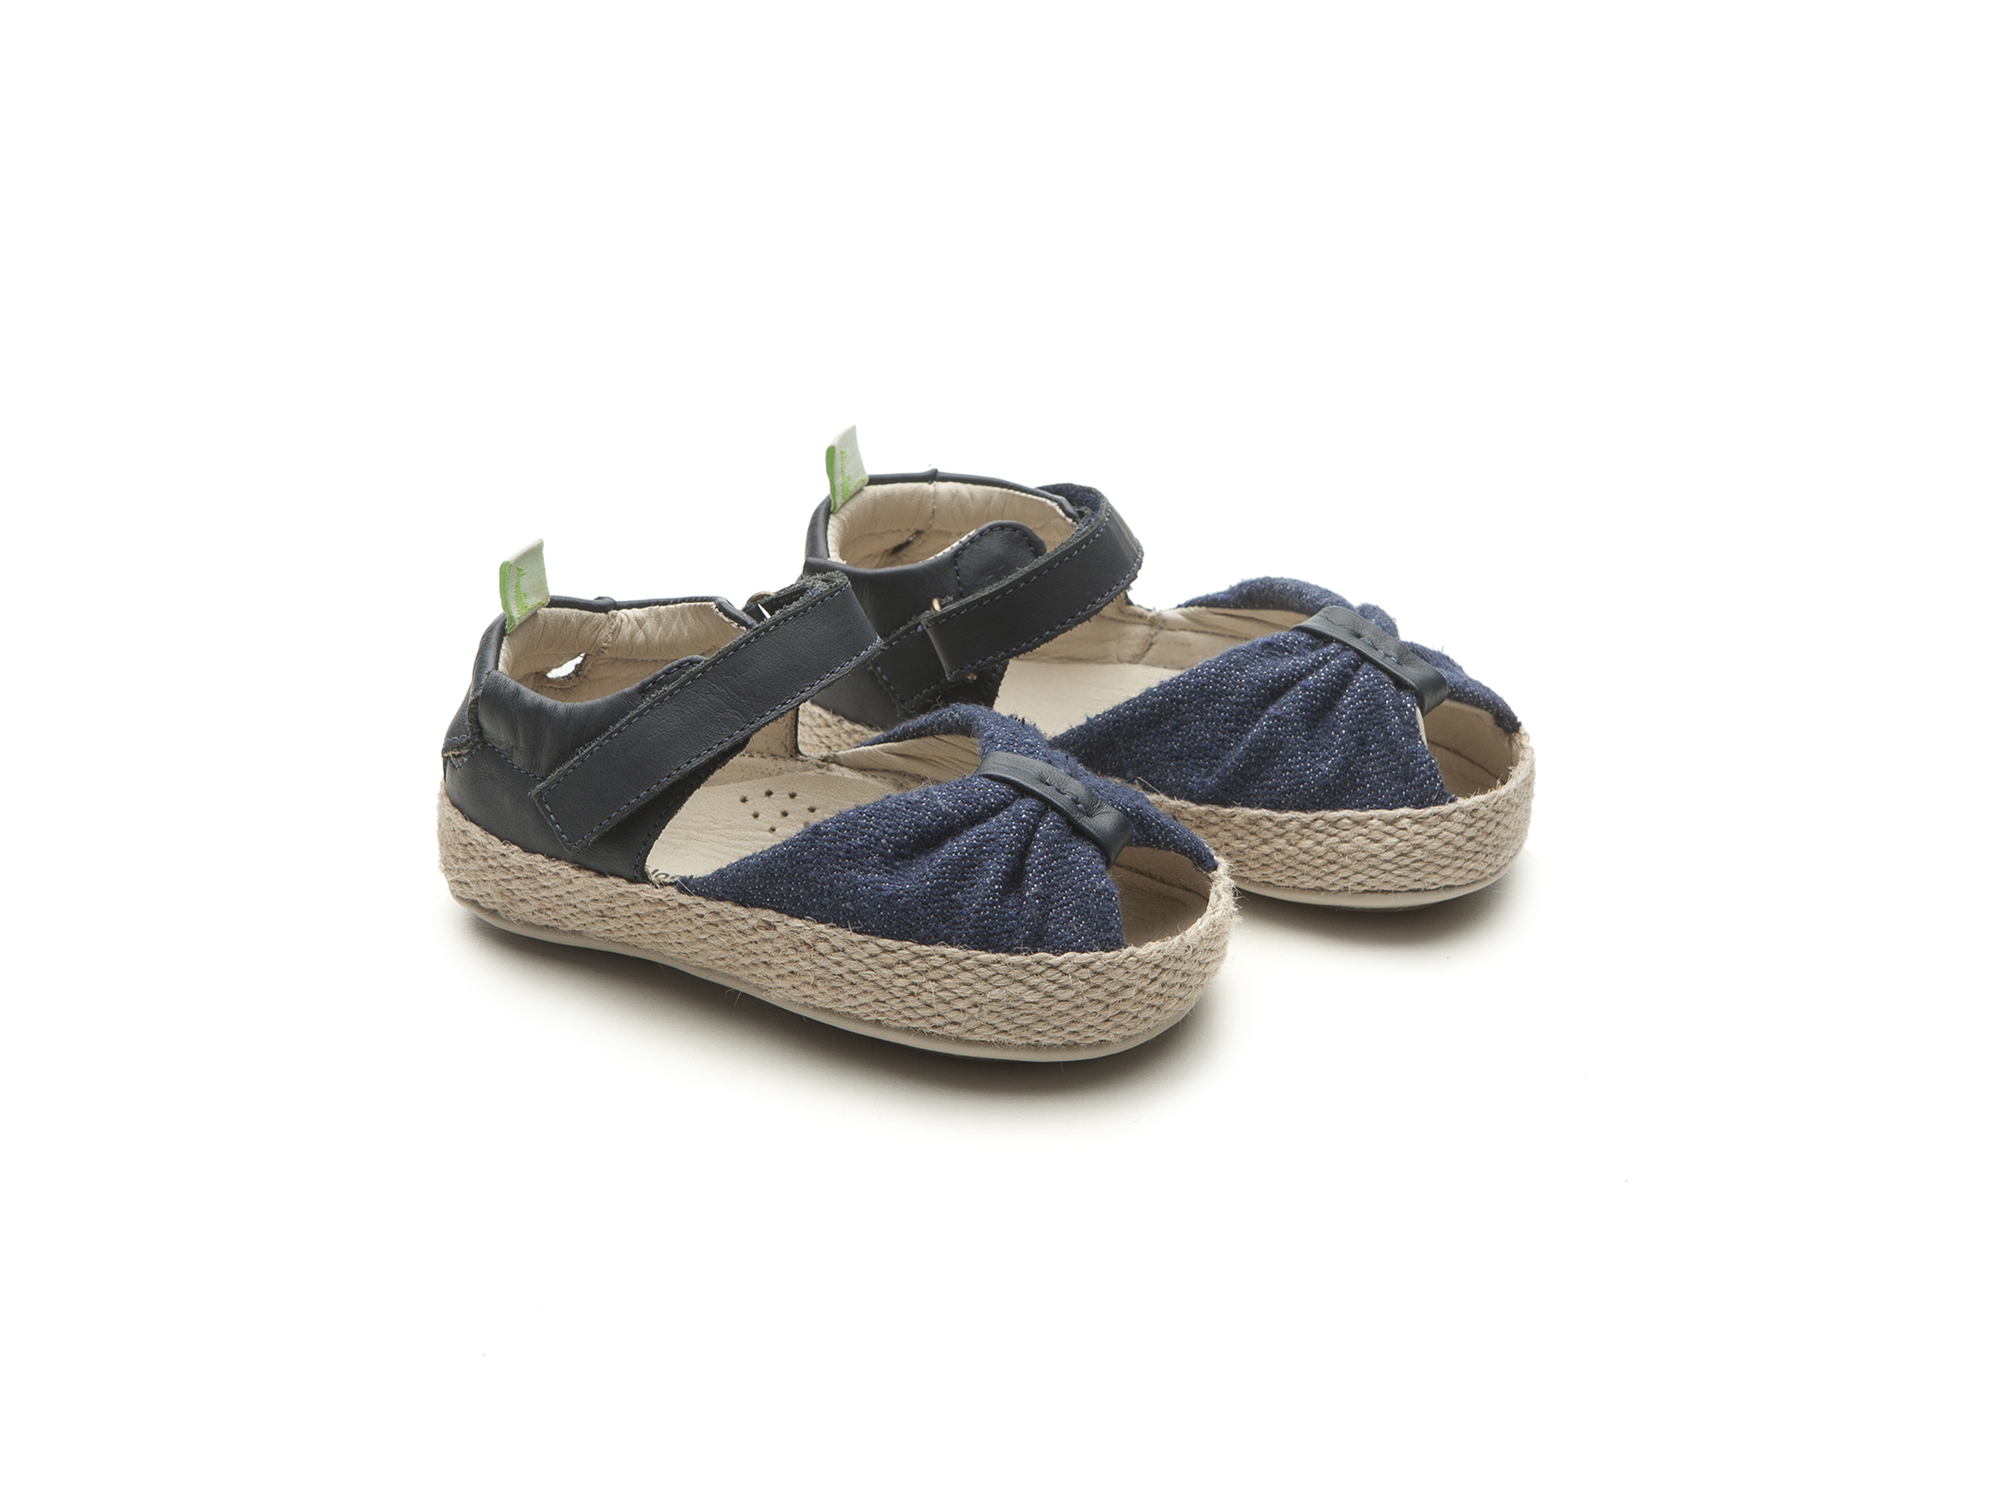 Sandália Coasty Jeans Canvas/ Navy Baby 0 à 2 anos - 0